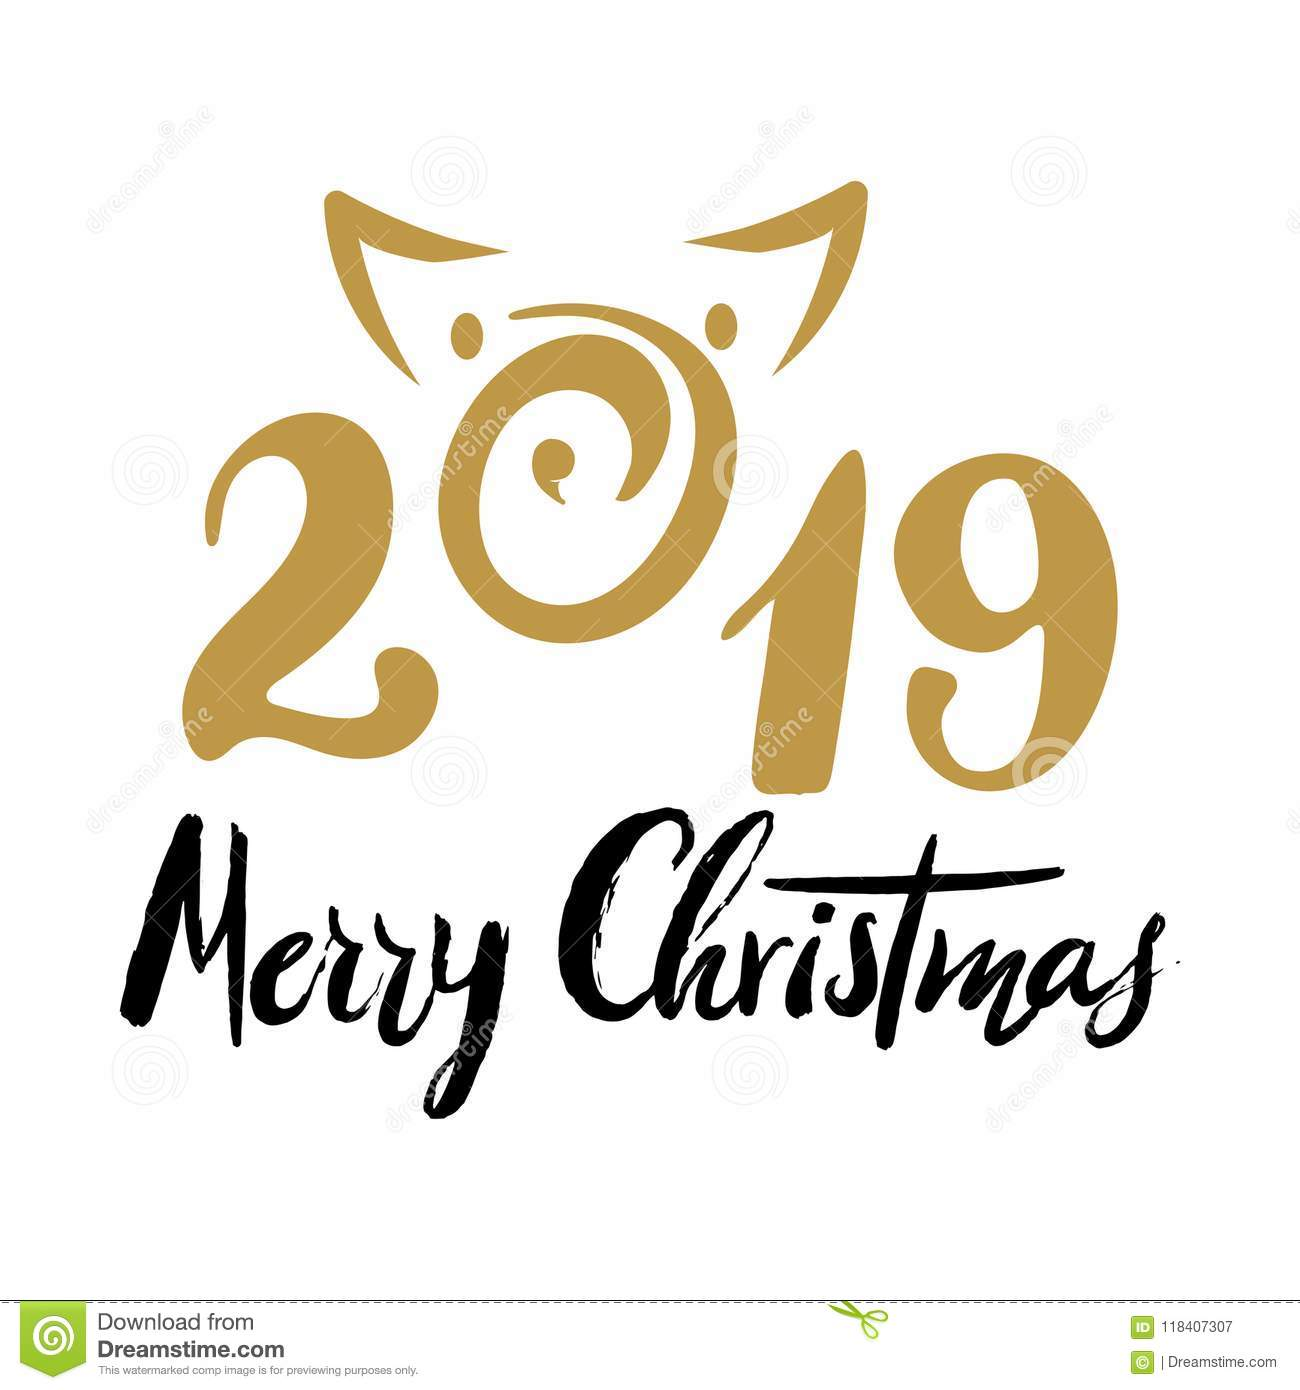 2019 Number For Designing New Year And Merry Christmas Card Poster Banner Organizer Stock Illustration Illustration Of Collection Grunge 118407307